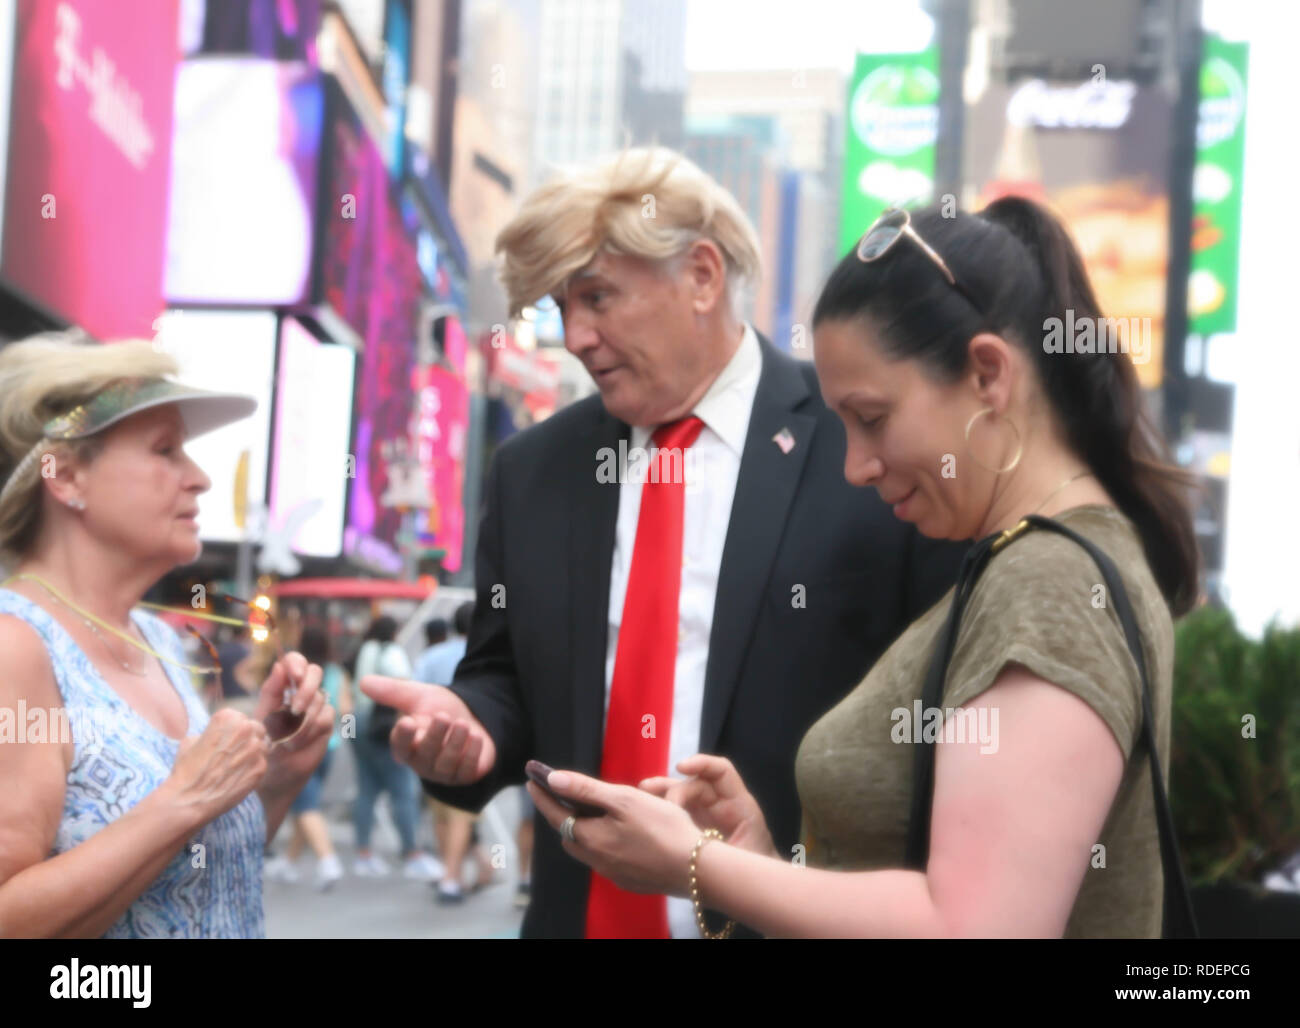 USA, New York, Manhattan, President Trump Look alike, at a special event day. - Stock Image